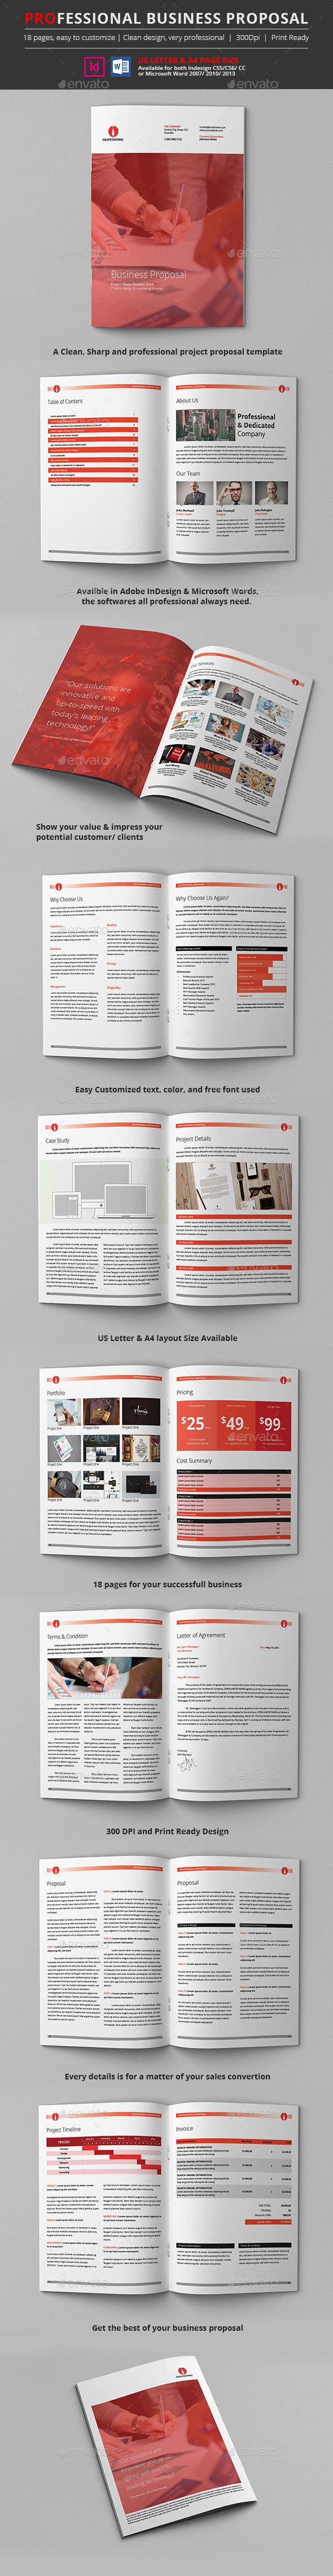 Professional Proposal Template InDesign INDD. Download here: https://graphicriver.net/item/professional-proposal-template/17501675?ref=ksioks